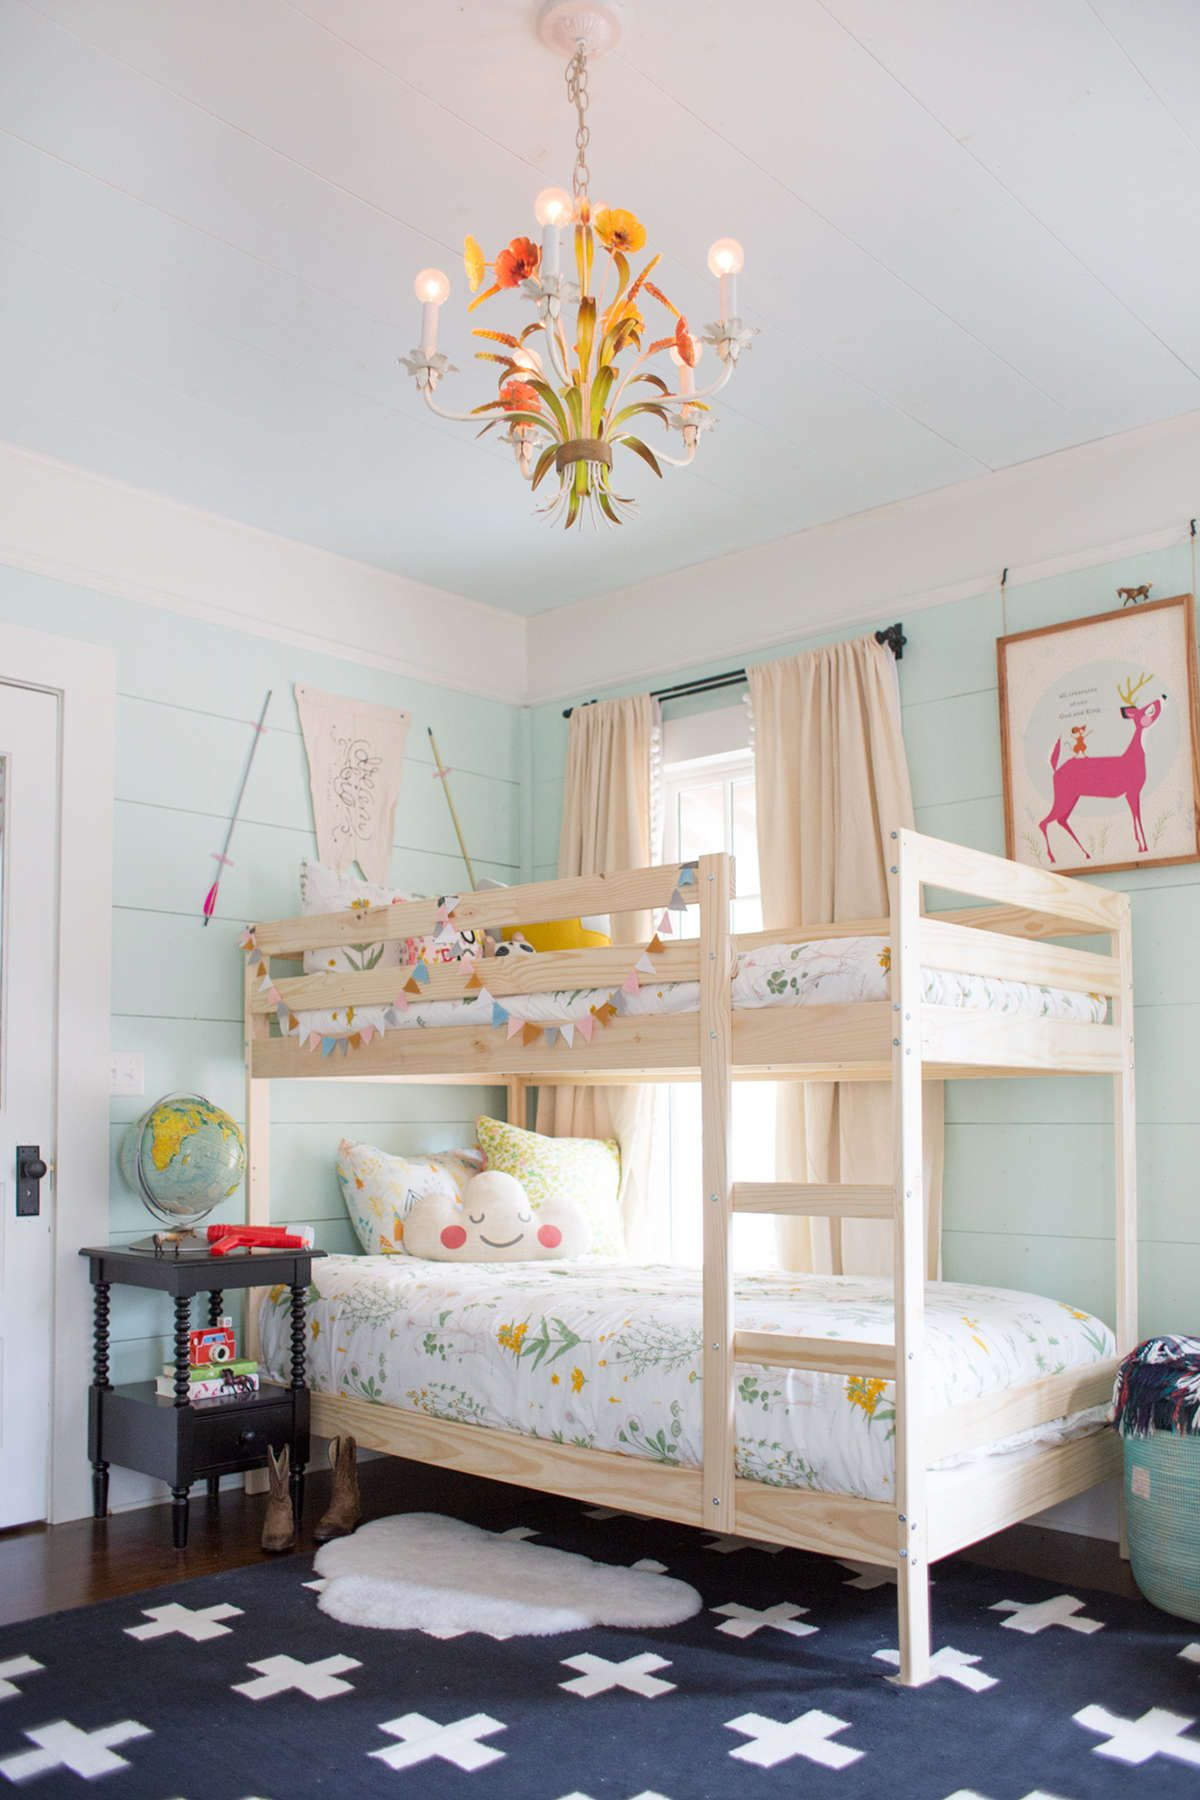 shared room for two kids a baby shared rooms three kids and room